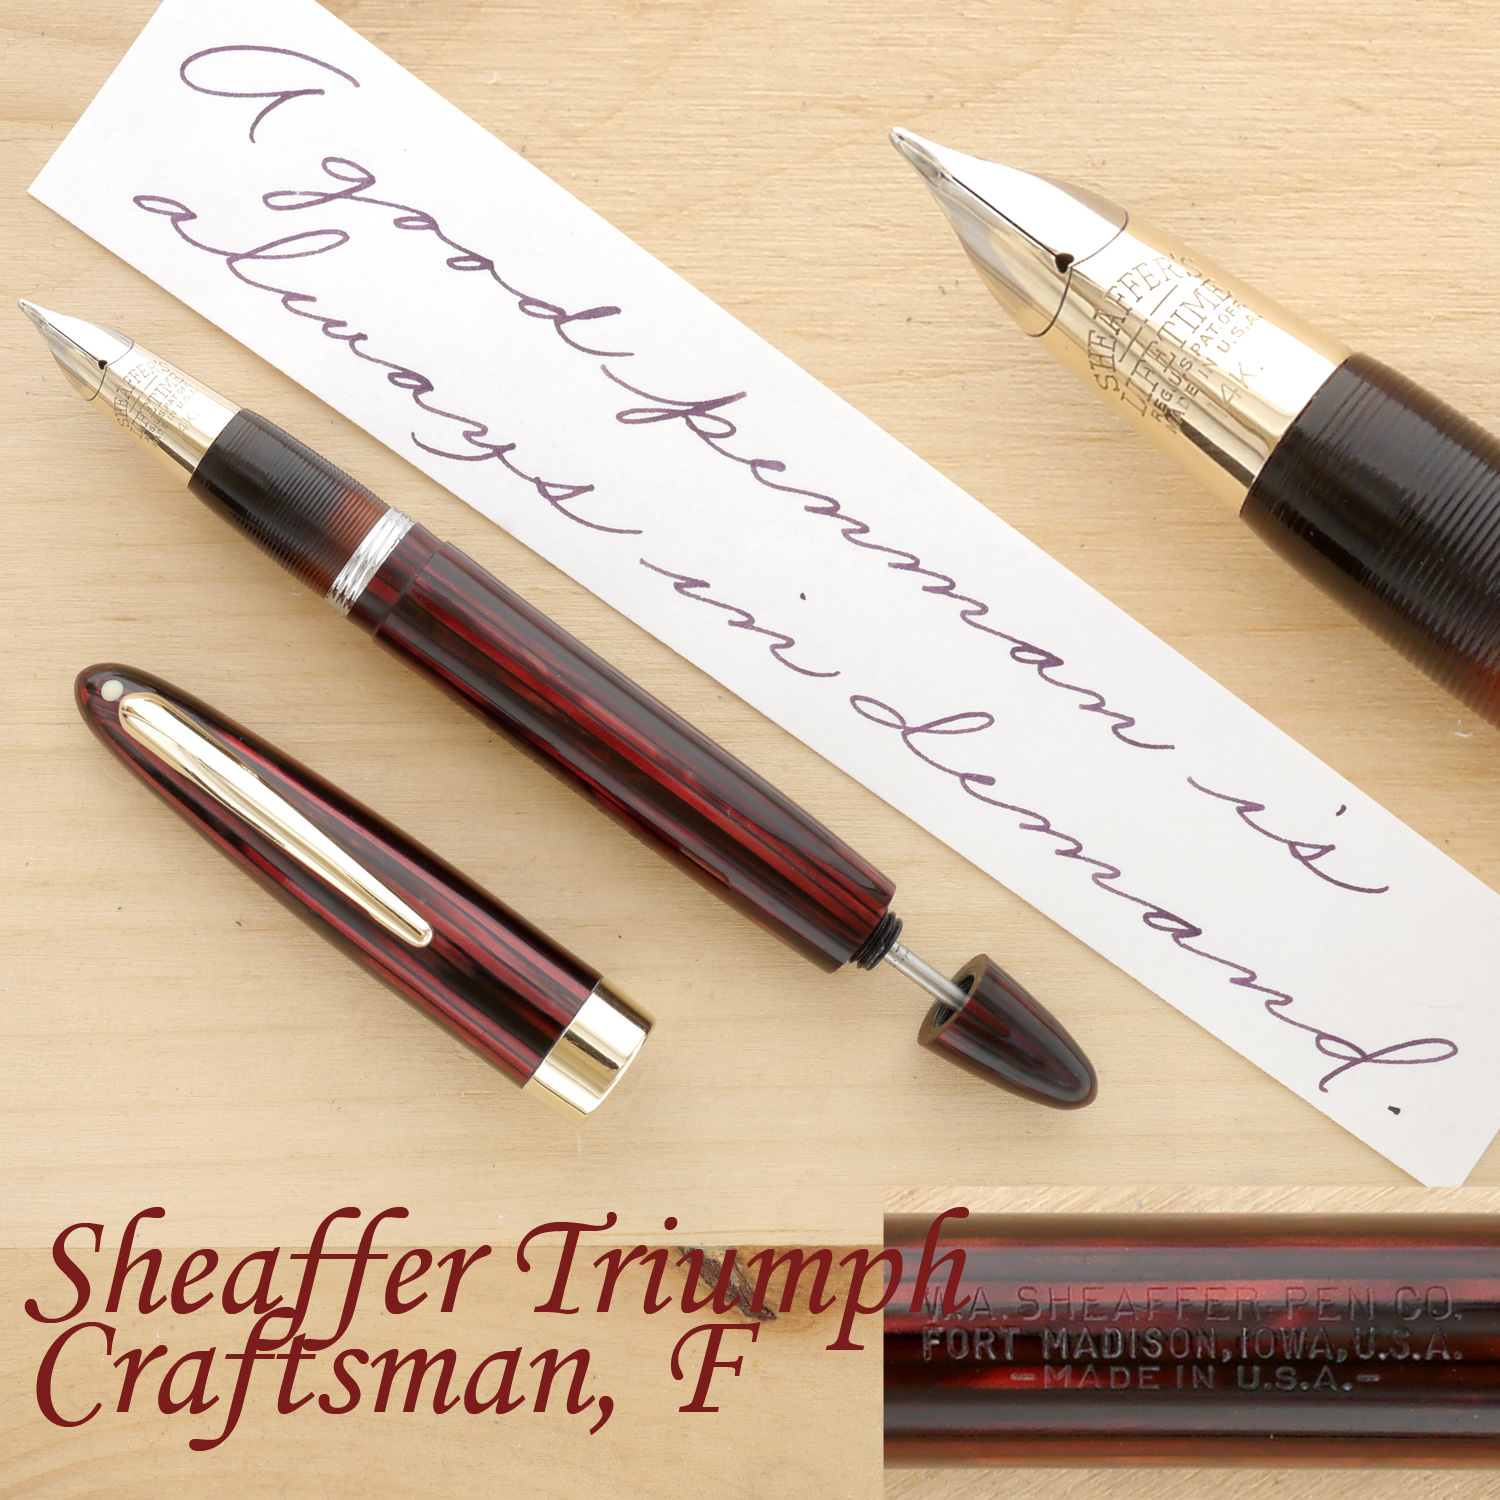 Sheaffer Triumph Statesman Fountain Pen, Carmine, F, uncapped, with the plunger partially extended